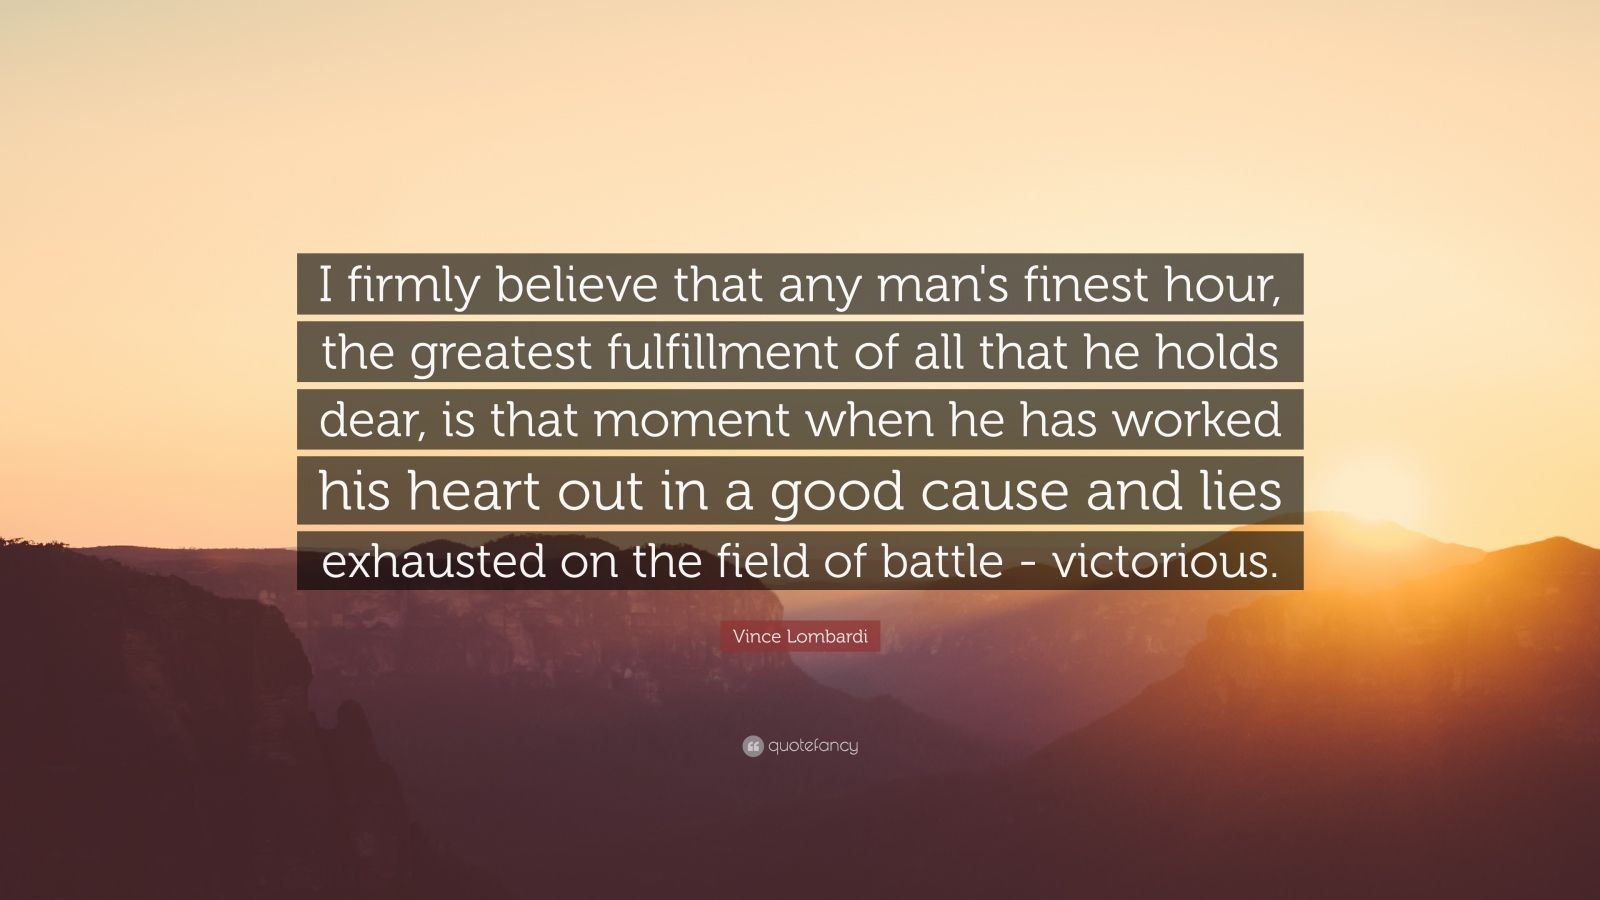 Vince Lombardi Quotes I Firmly Believe